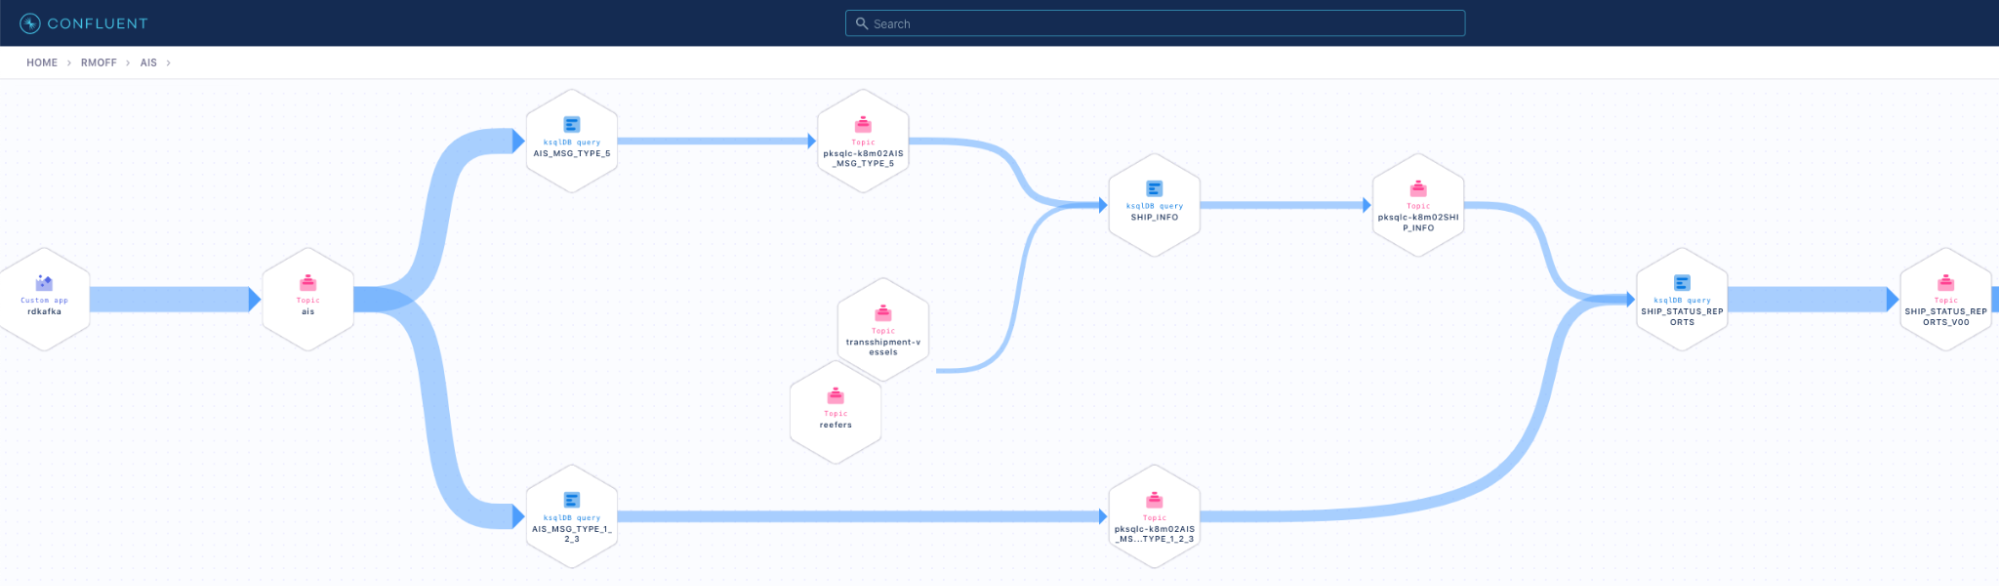 Data Lineage view in Confluent Cloud